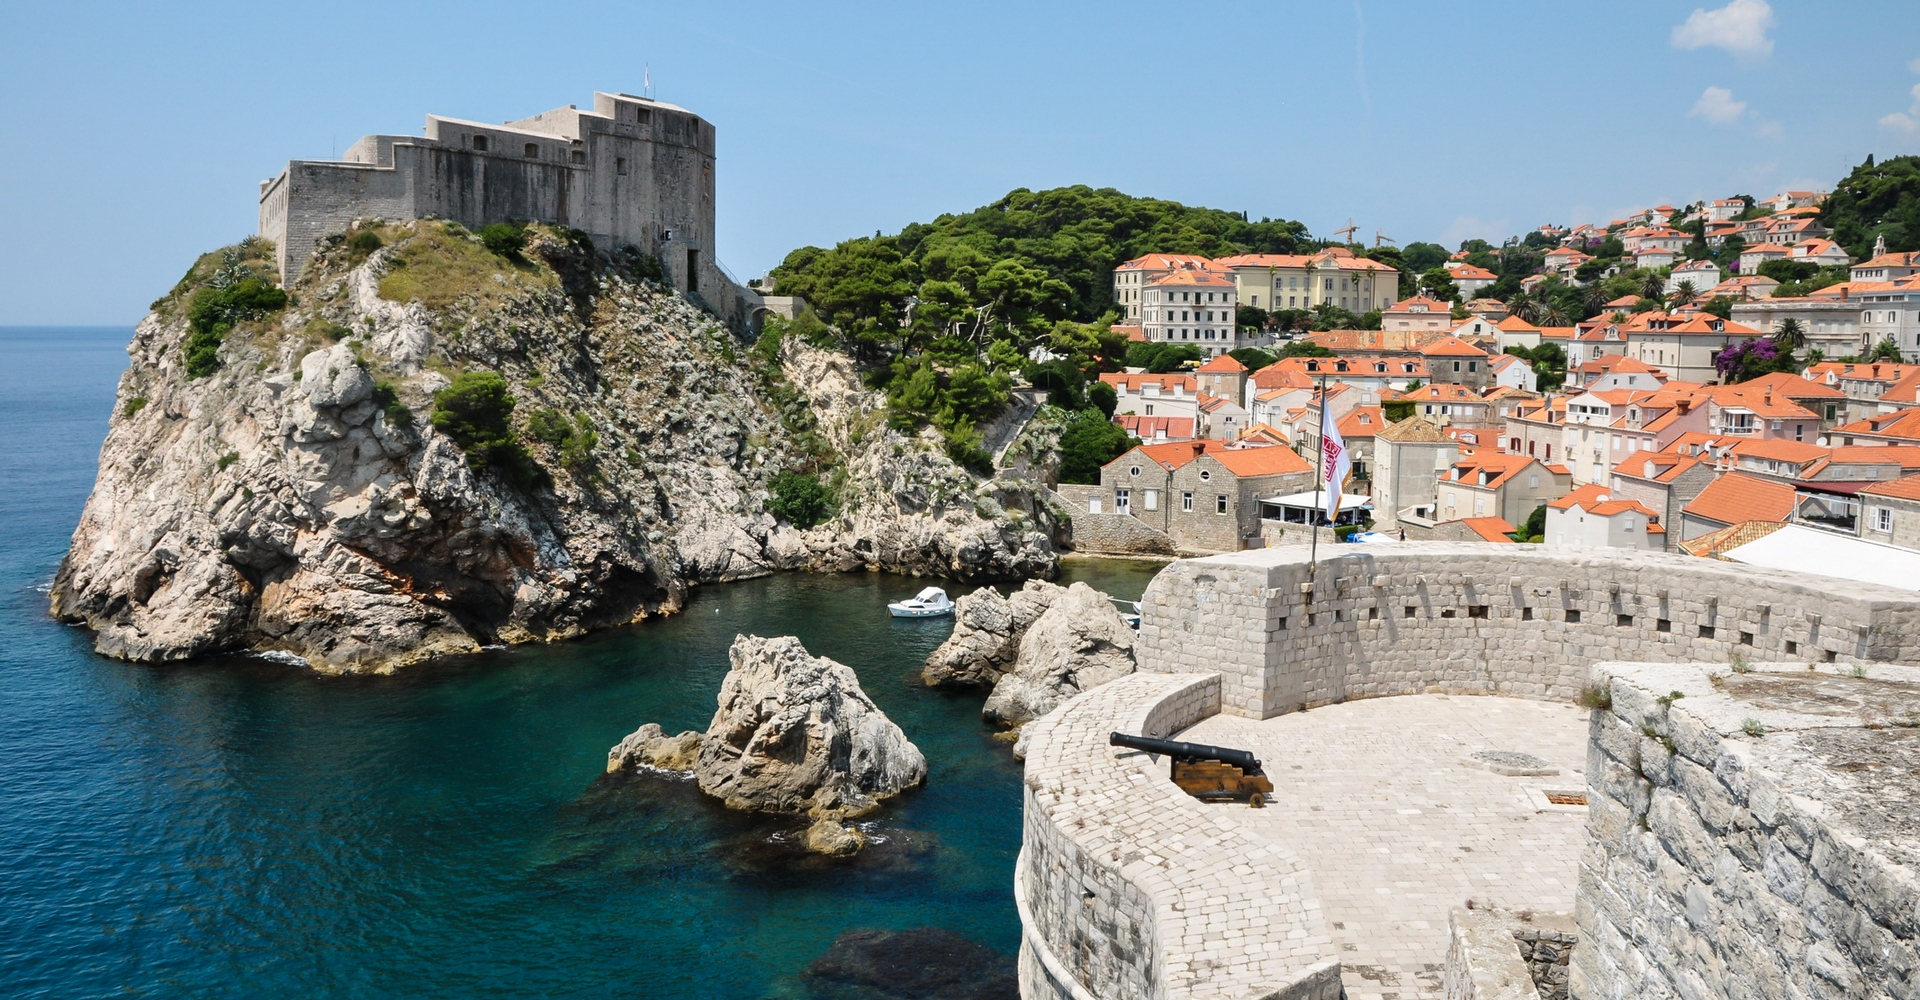 Do you know why you should visit Dubrovnik?